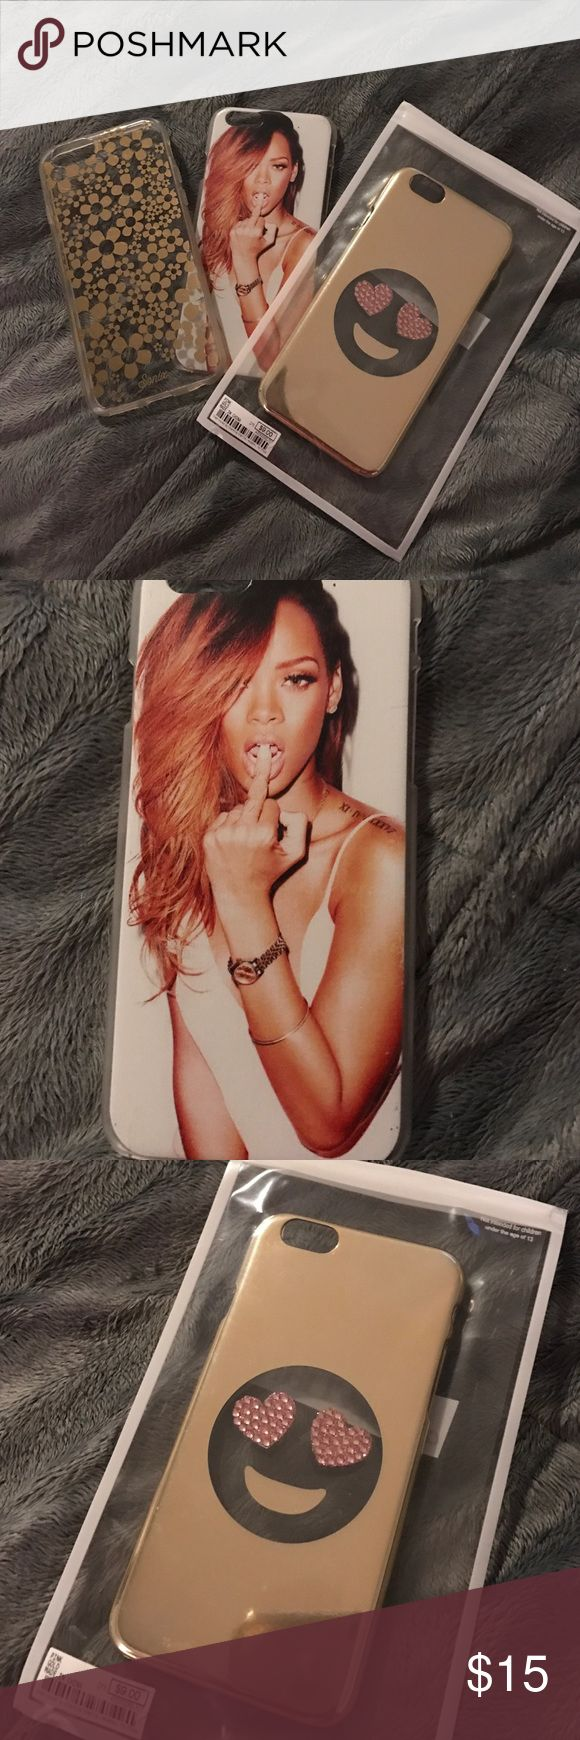 iPhone 6/6S Case Bundle Three on trend iPhone cases. Like new! Features cases from Charming Charlie, Sonix, and one Rihanna Case. Great DEAL! Charming Charlie Accessories Phone Cases